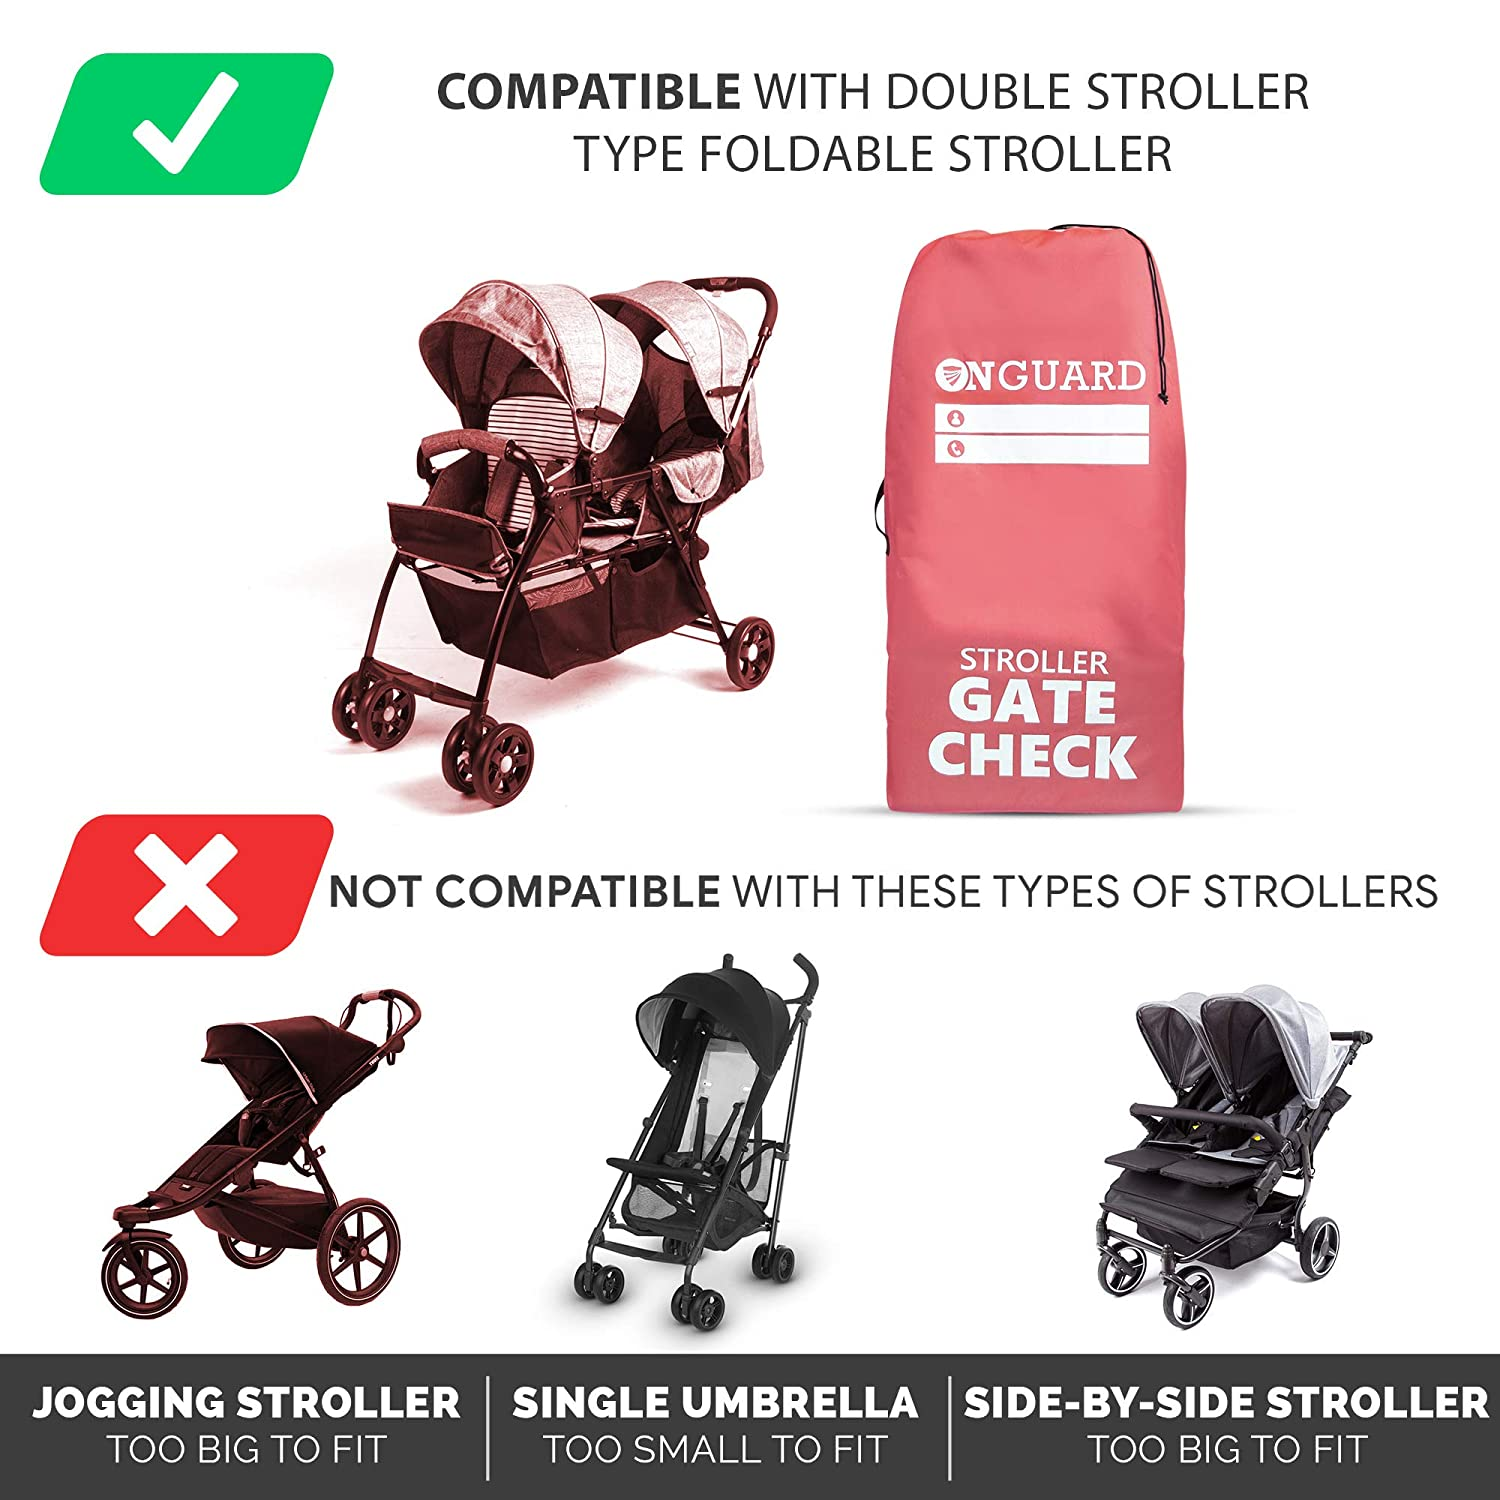 Waterproof Rip Resistant Polyester Compact Stroller Bag for Airplane OnGuard Stroller Travel Bag for Double Strollers Stroller Bag Cover Accessories Gate Check Bag for Baby Stroller